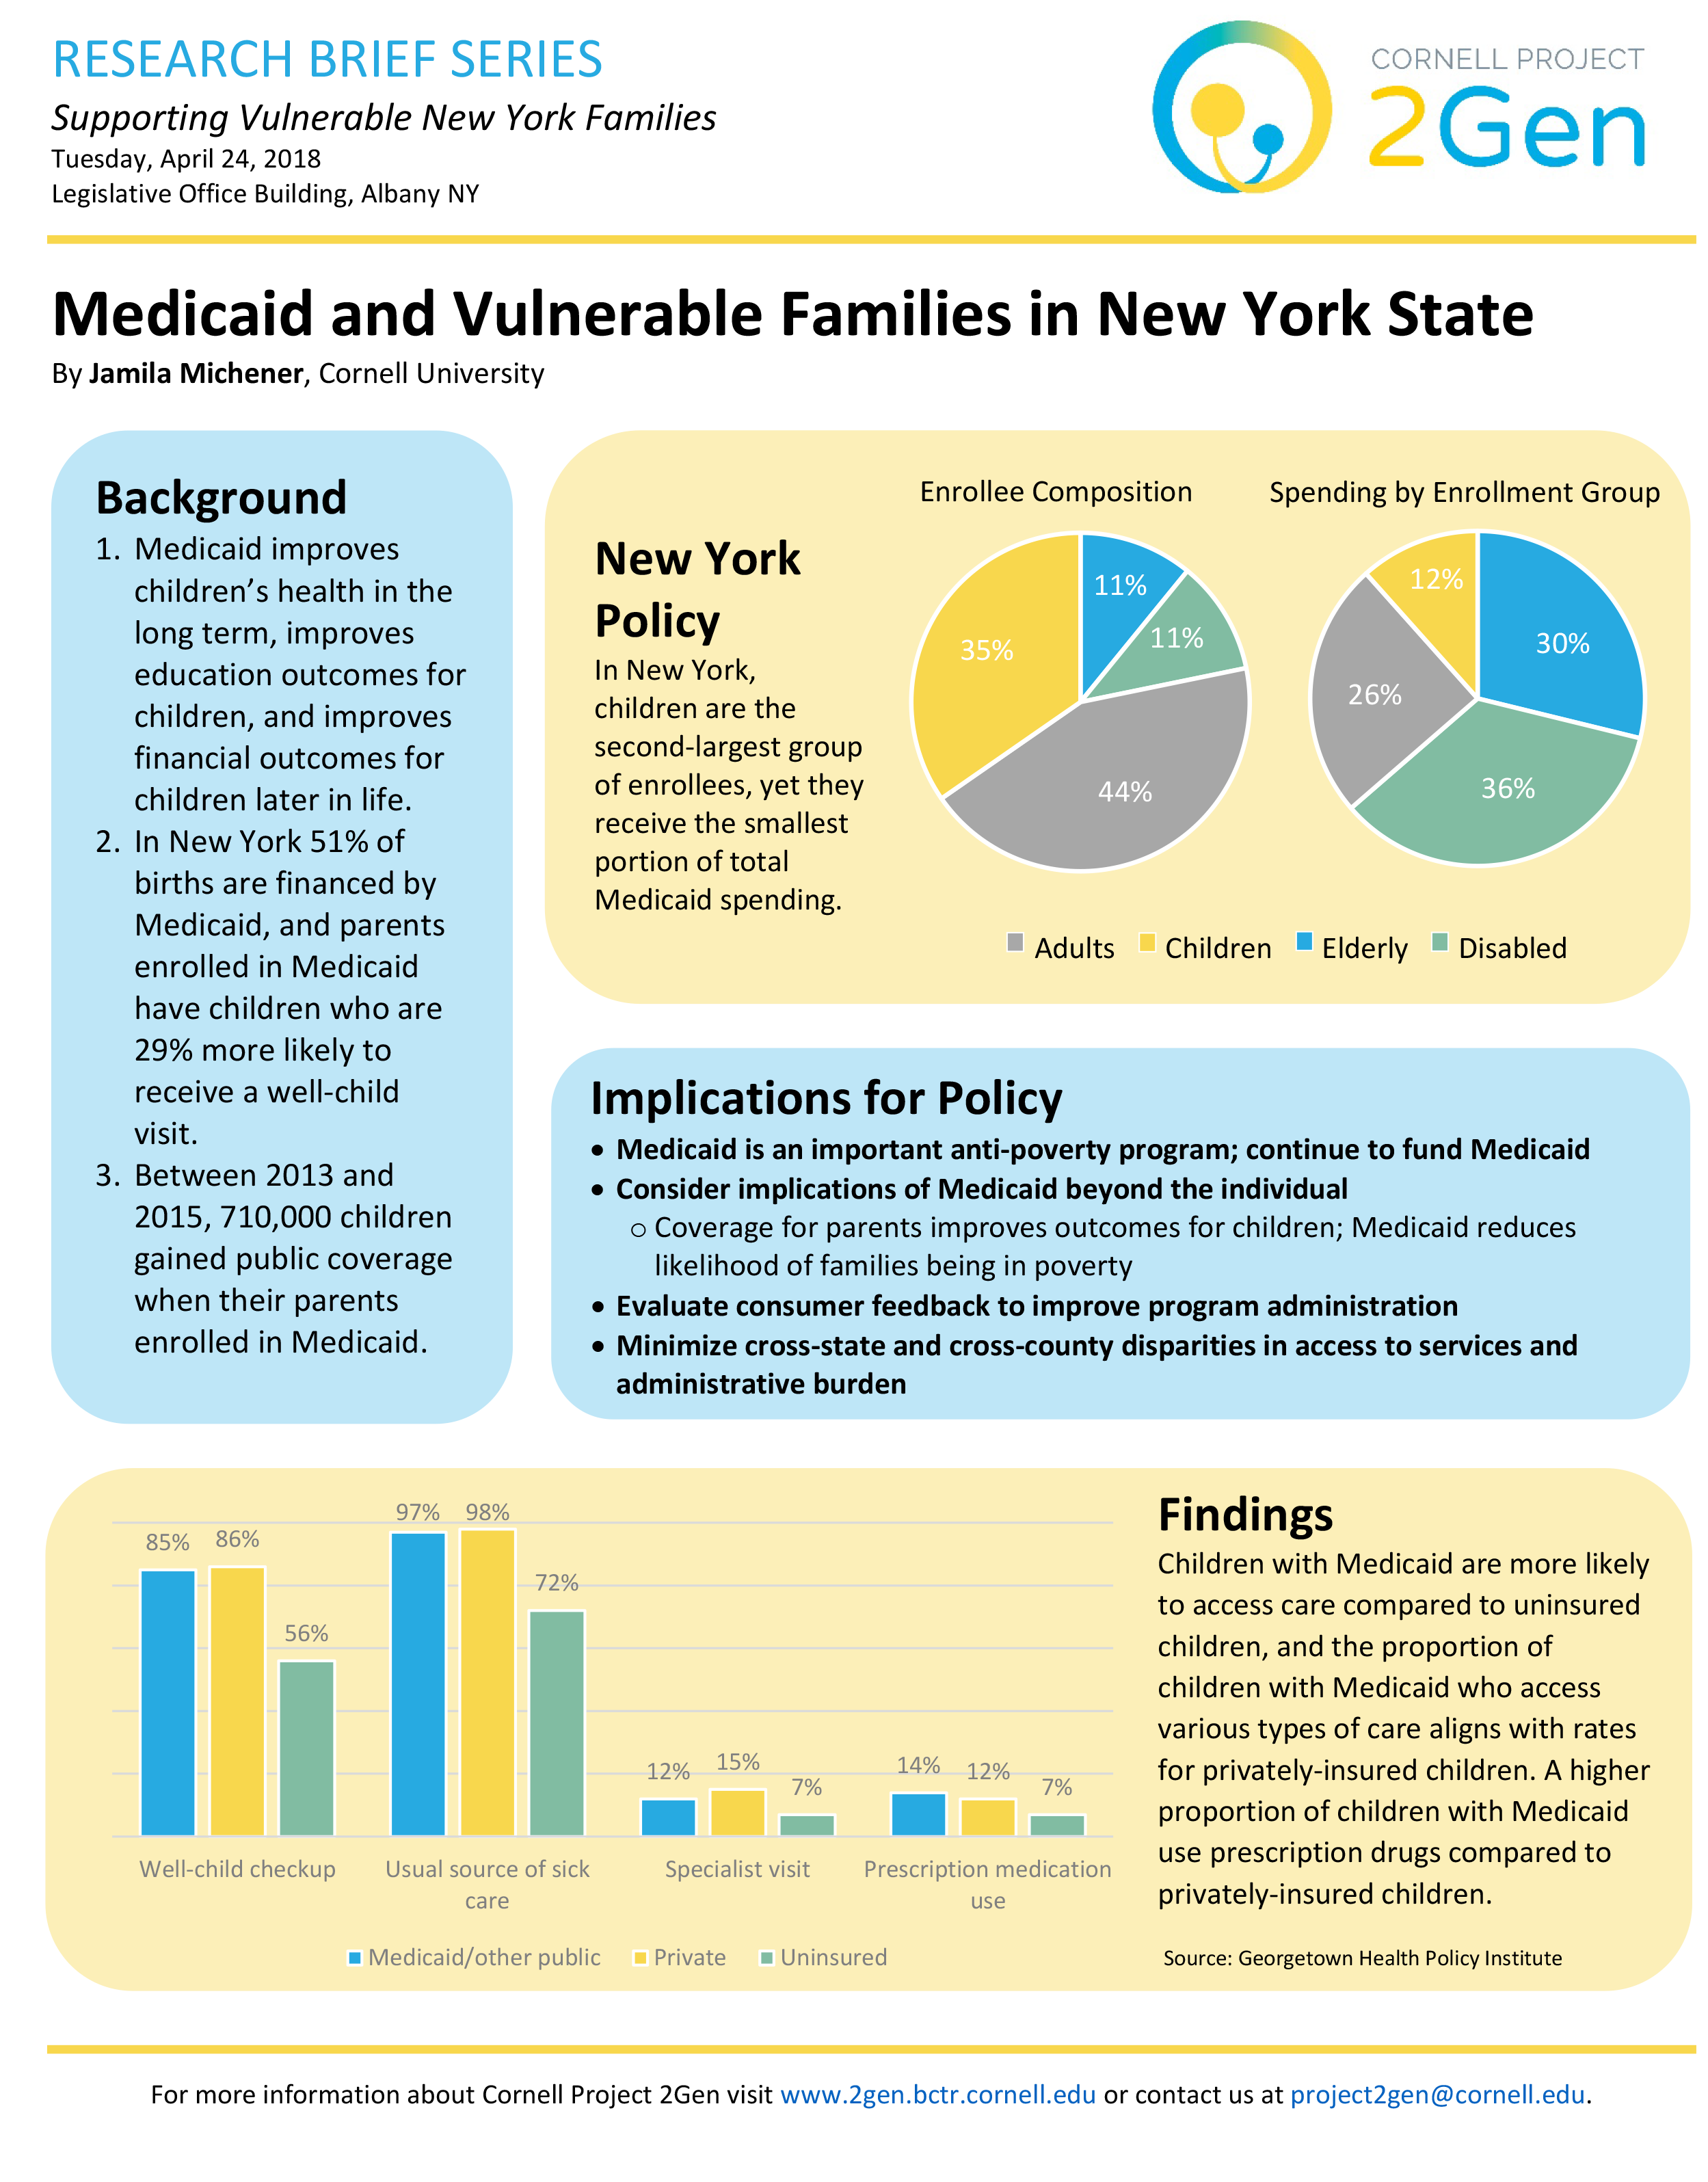 cornell2gen-researchbrief-medicaid.png